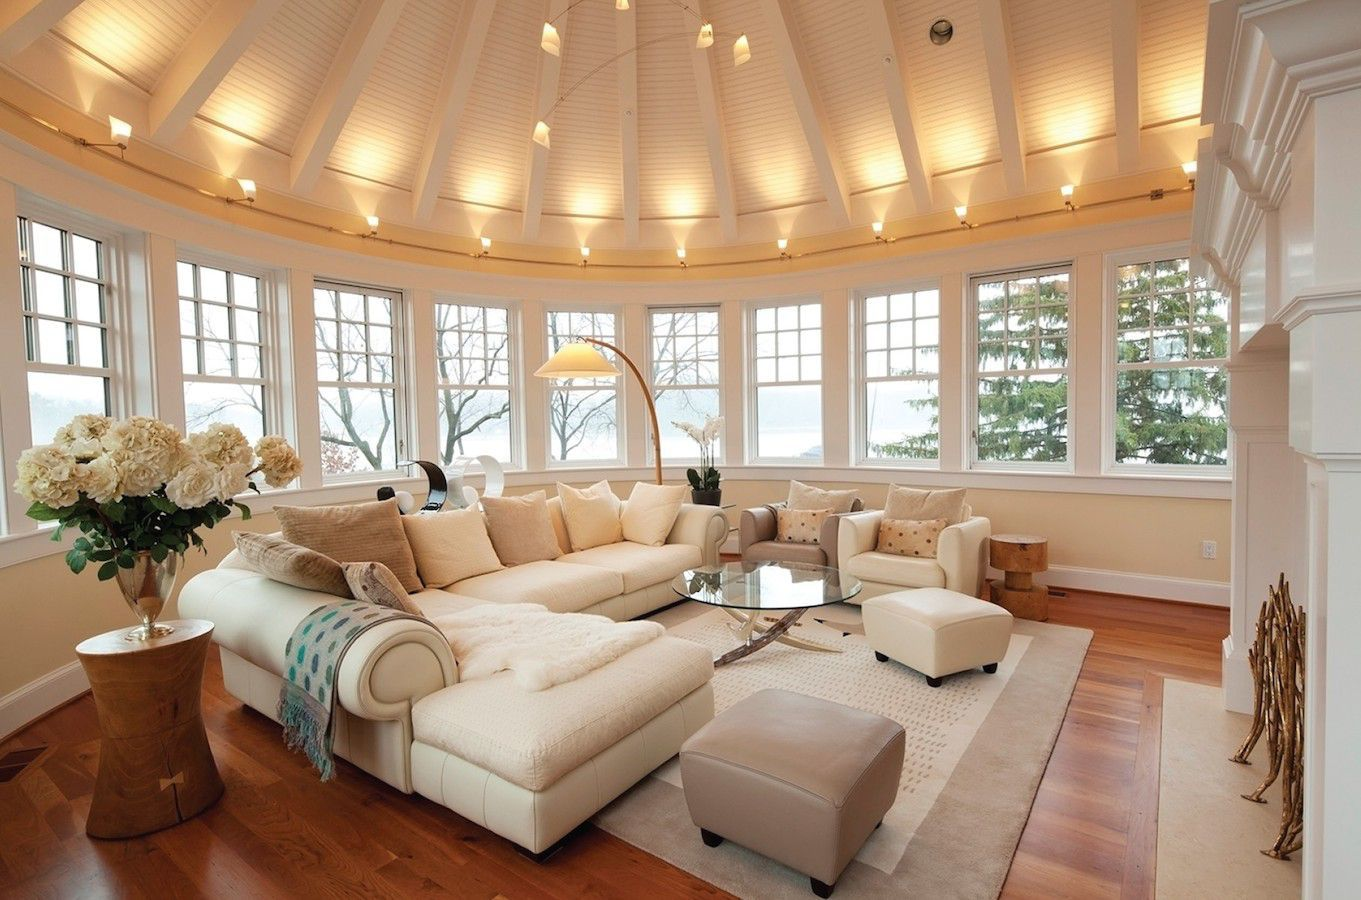 Sunroom With Fireplace Designs A Second Floor Sunroom Features A Semi Circular Vaulted Ceiling